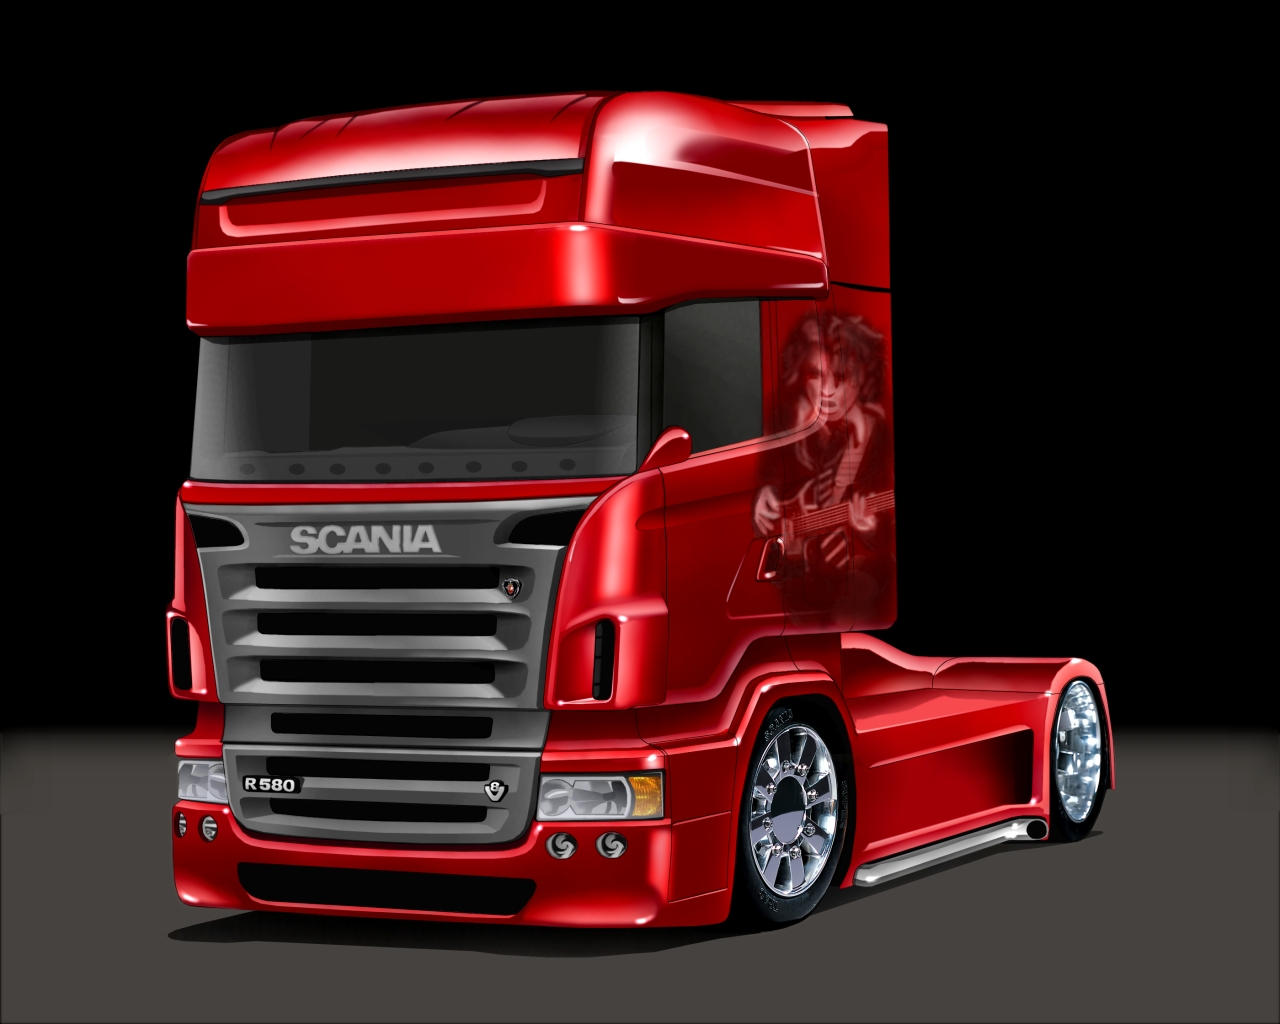 scania r lkw technischen daten truck spezifikationen kraftstoffverbrauch informationen. Black Bedroom Furniture Sets. Home Design Ideas